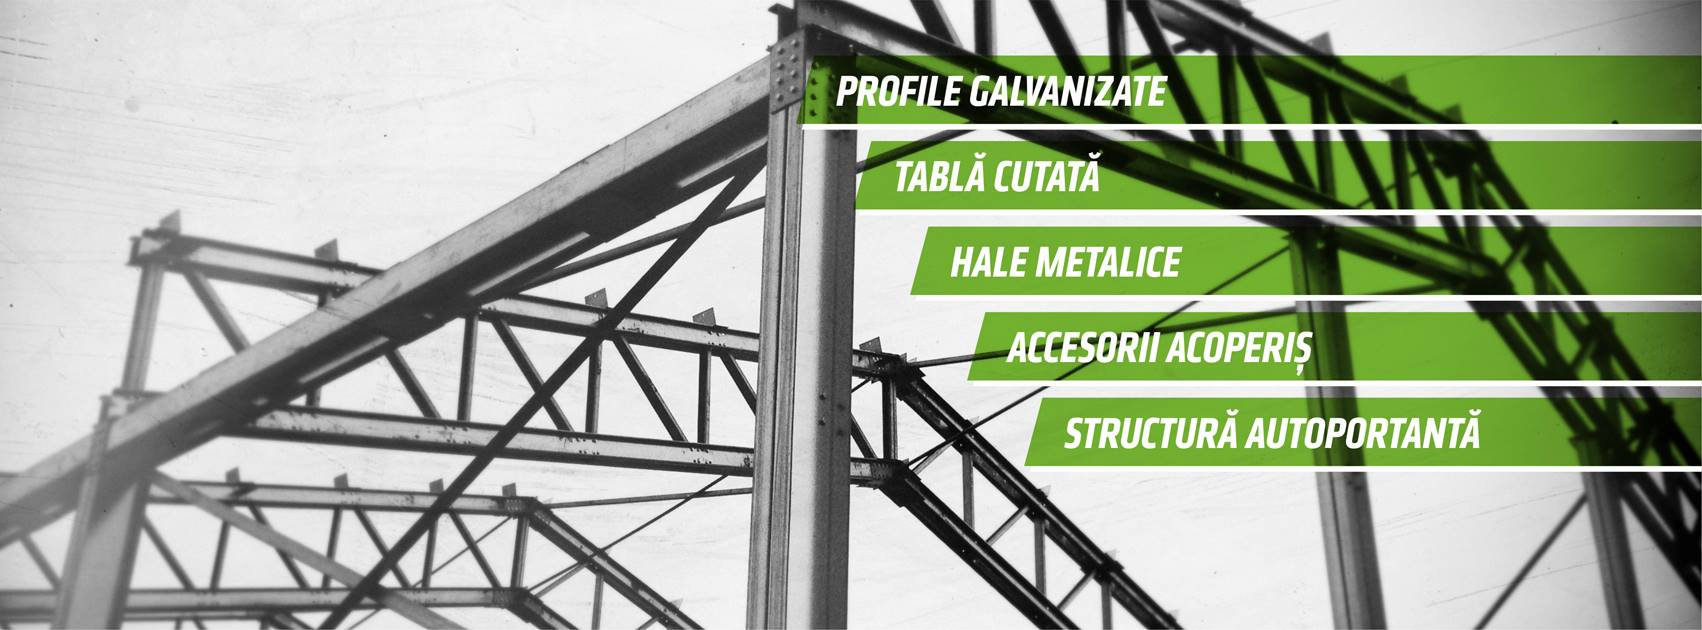 head-profile-galvanizate